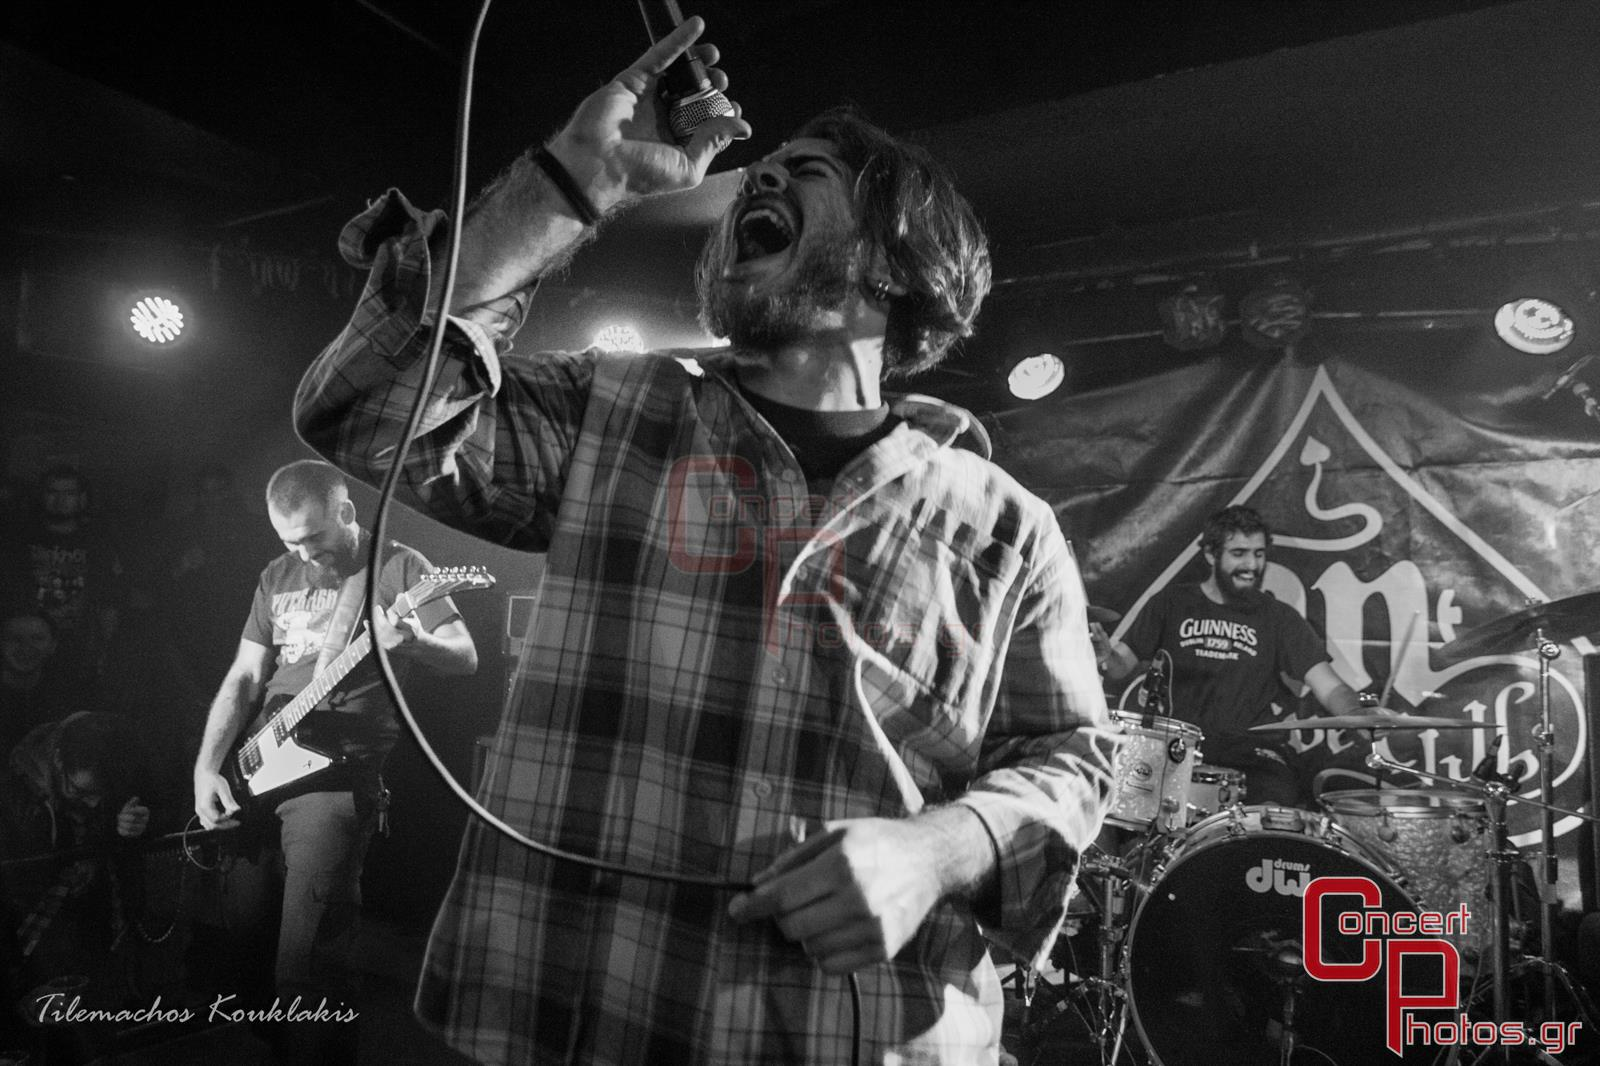 Nightstalker-Nightstalker AN Club photographer:  - concertphotos_-1